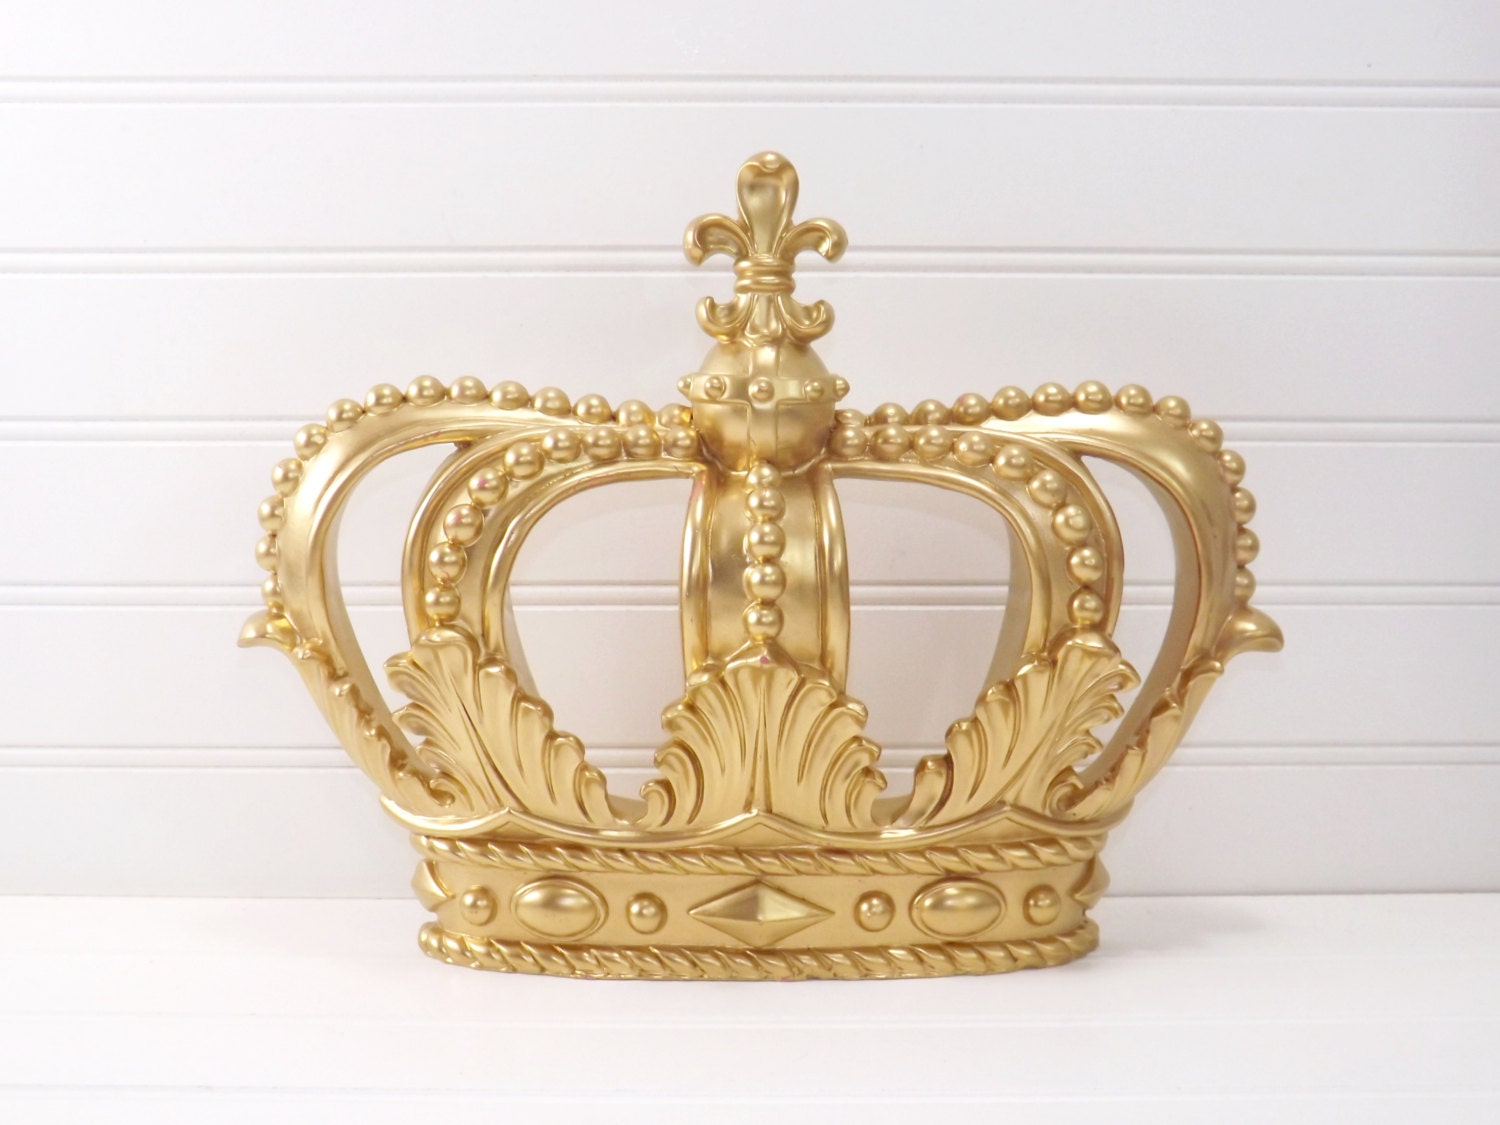 Boys Bedroom Decor Ideas Gold Princess Crown Gold Crown Crown Wall Decor Little